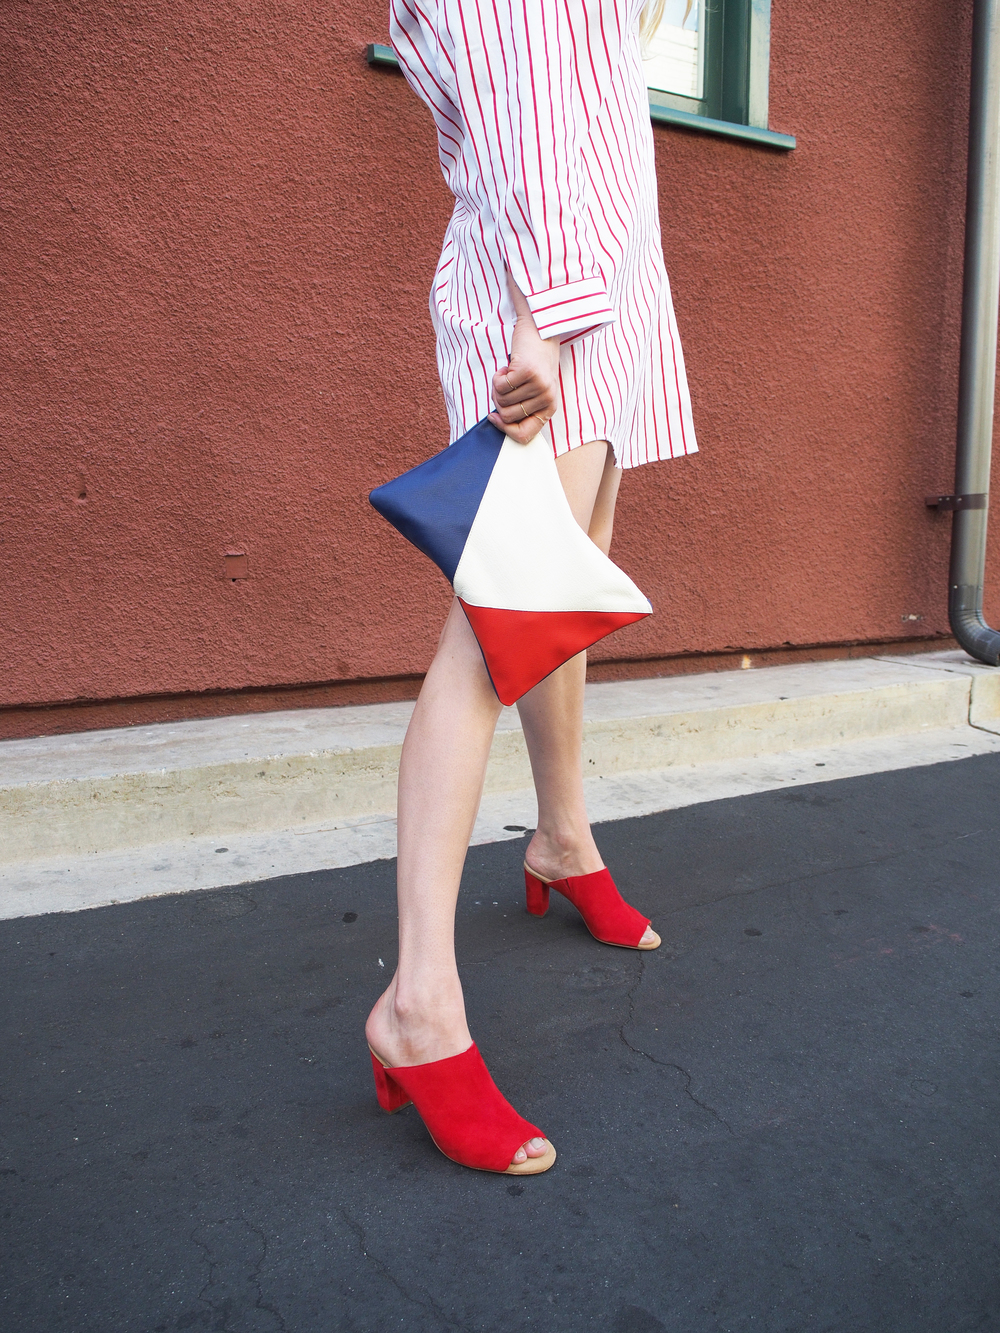 Double Sided Color Striped Shirt Clare V Charlotte Stone Morley Mules Street Style x Taylr Anne